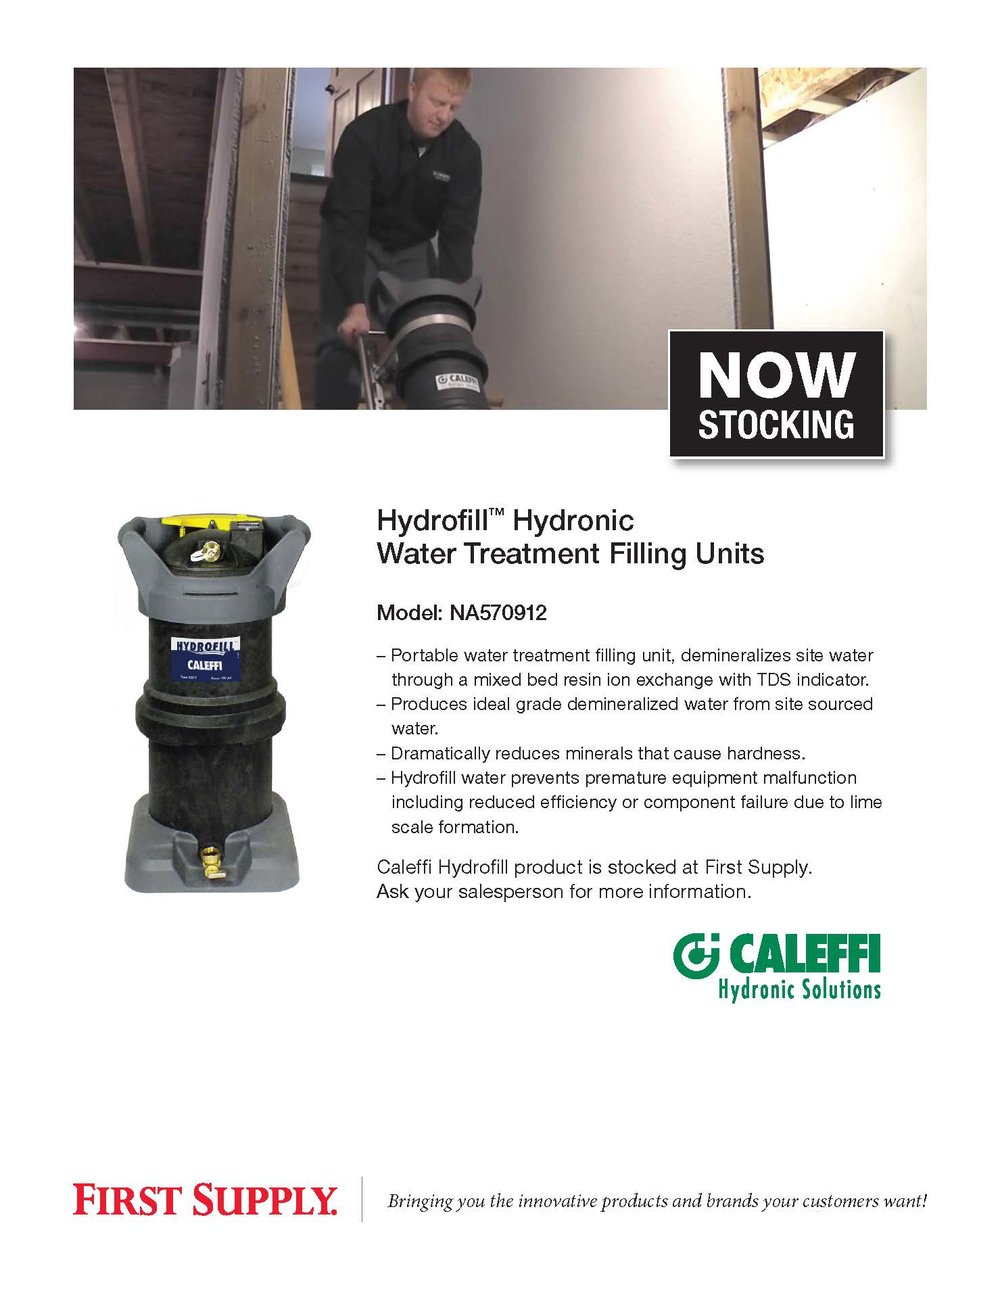 Caleffi - Hydrofill Hydronic Water Treatment Filling Unit